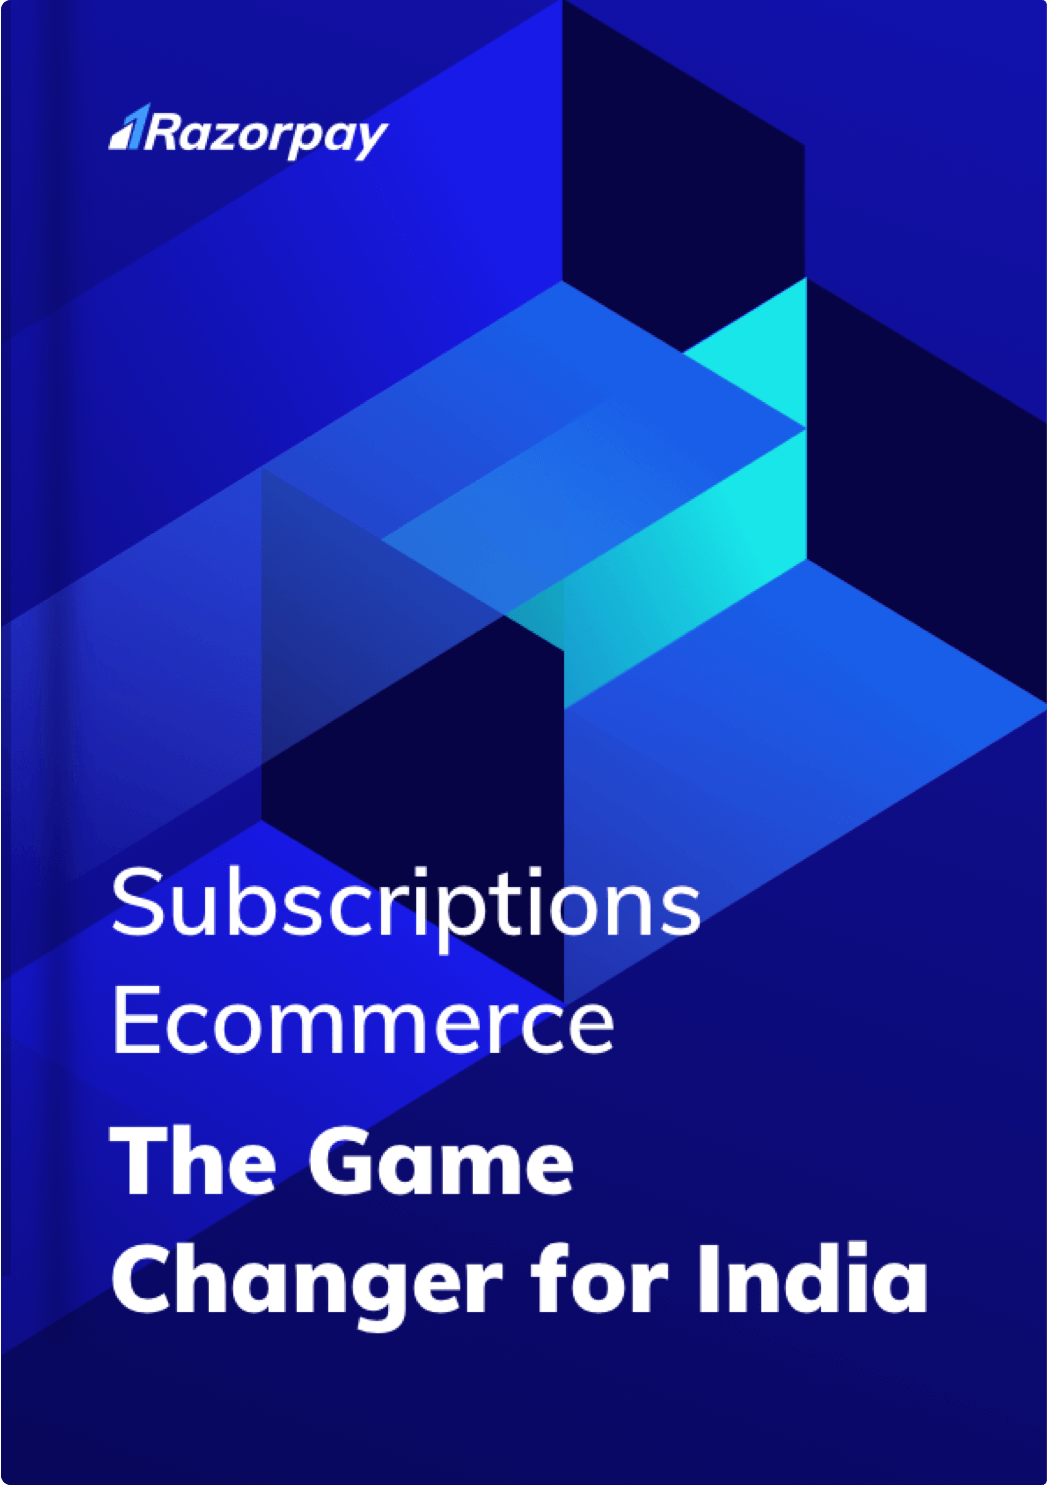 Subscriptions Ecommerce